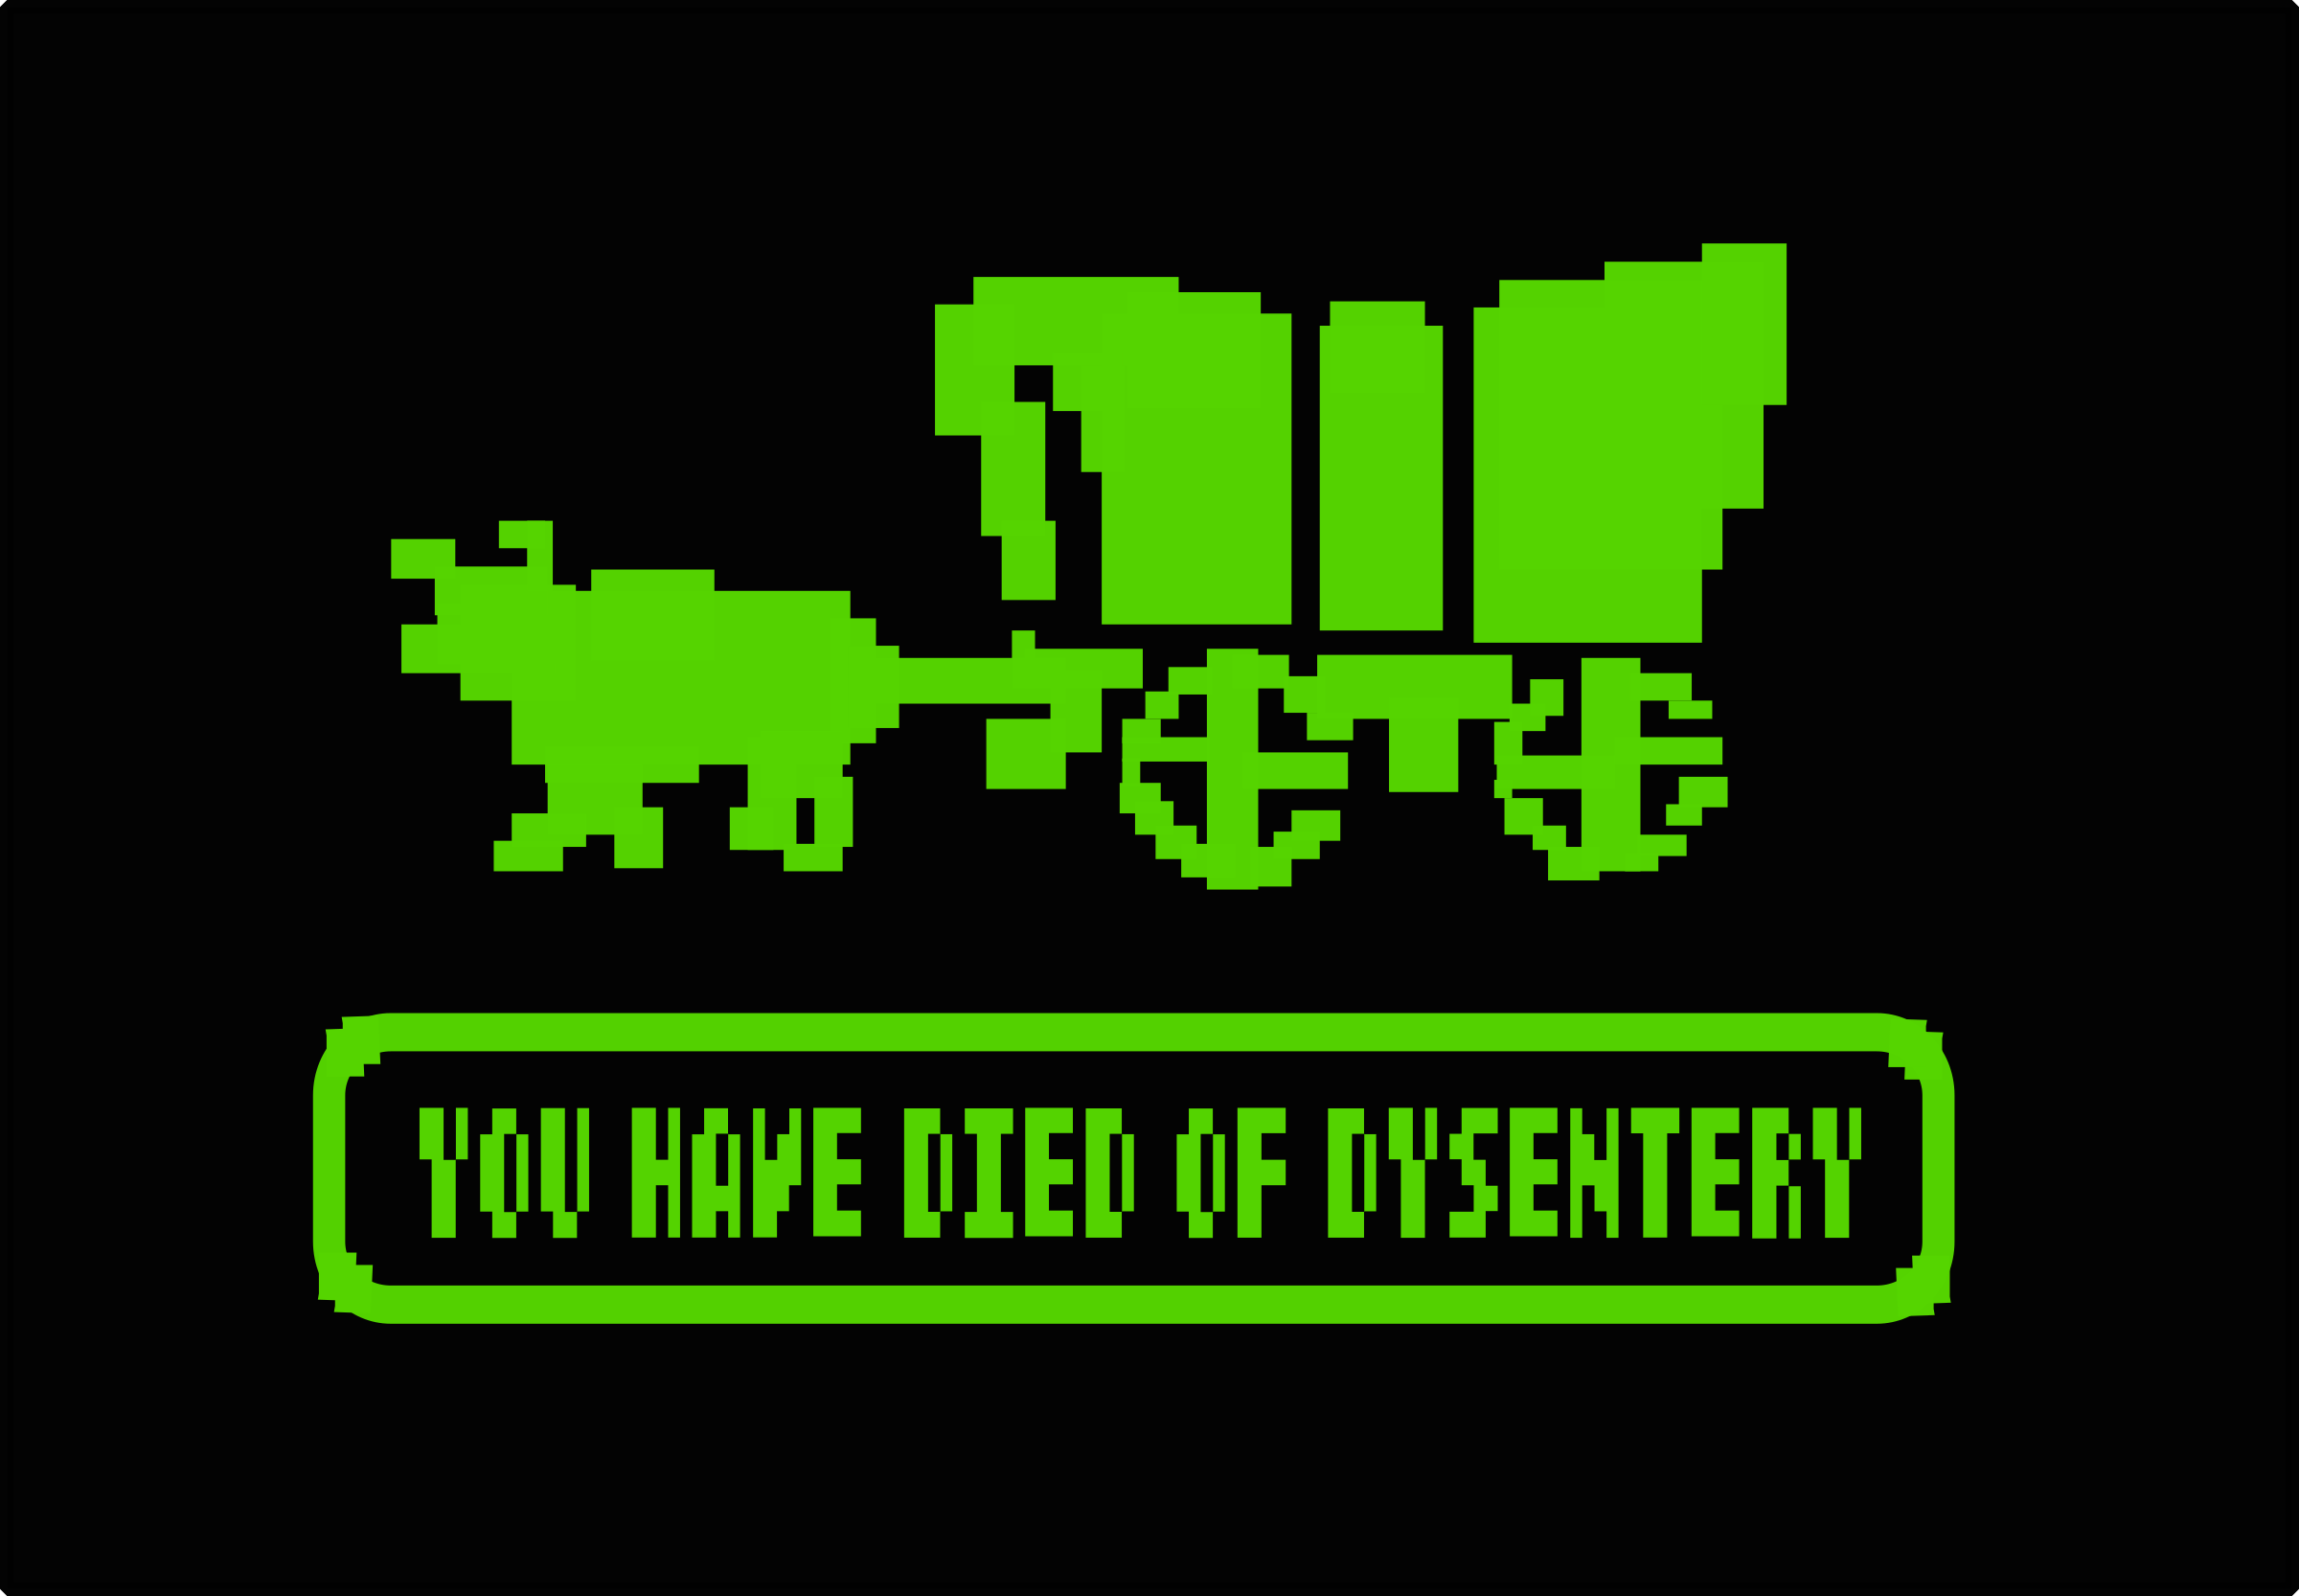 Dysentery by j4p4n